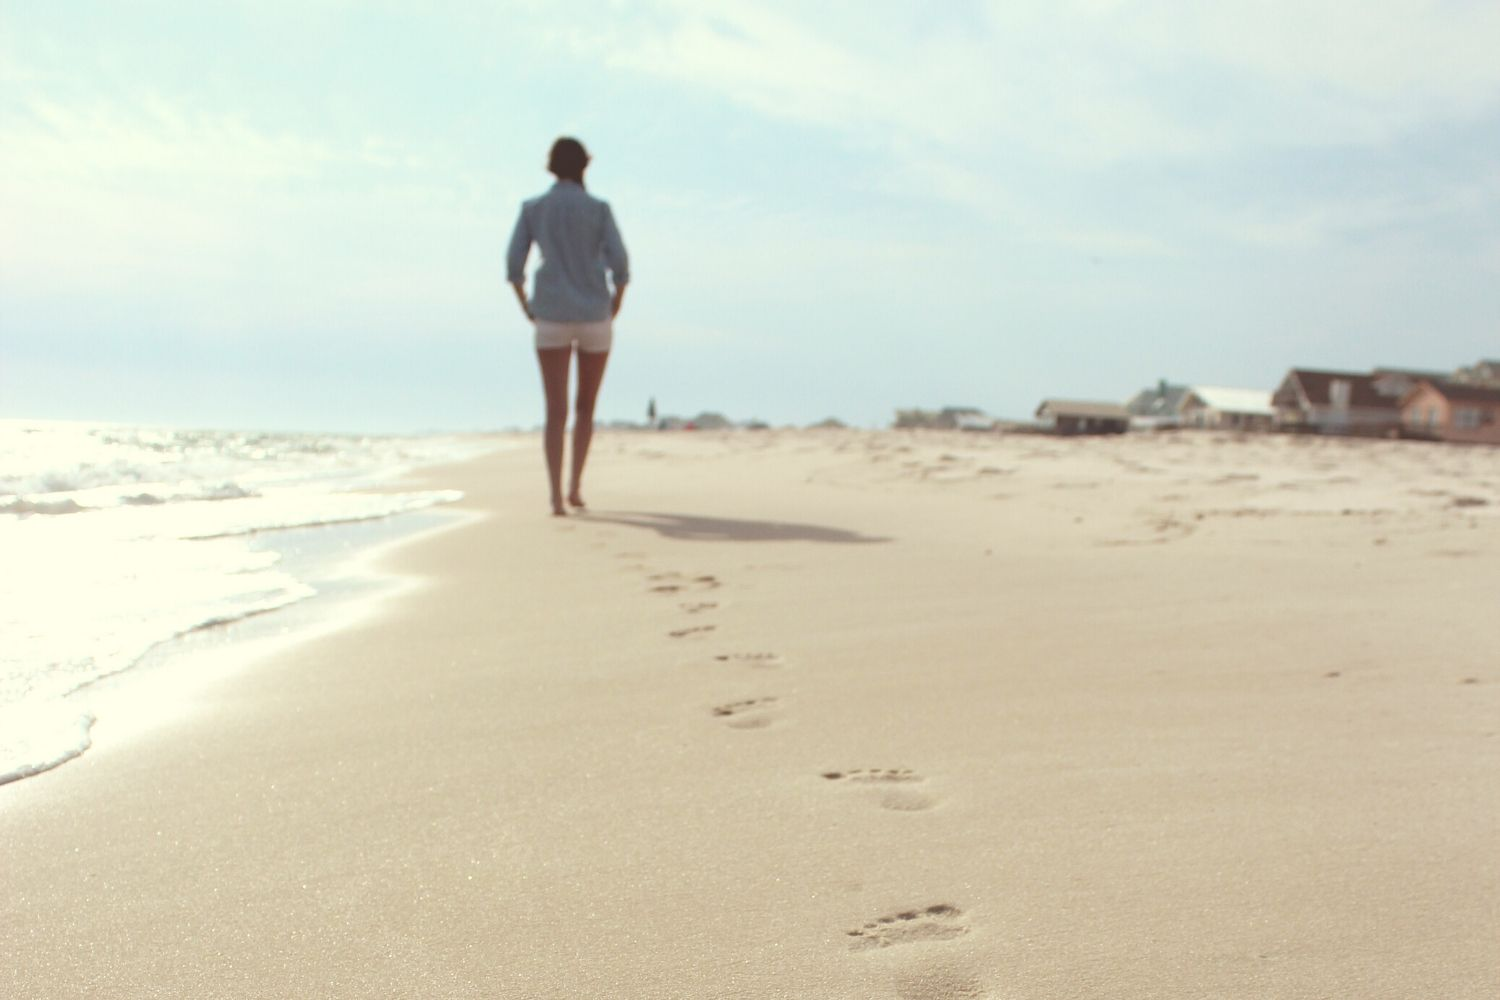 Woman walking alone on beach